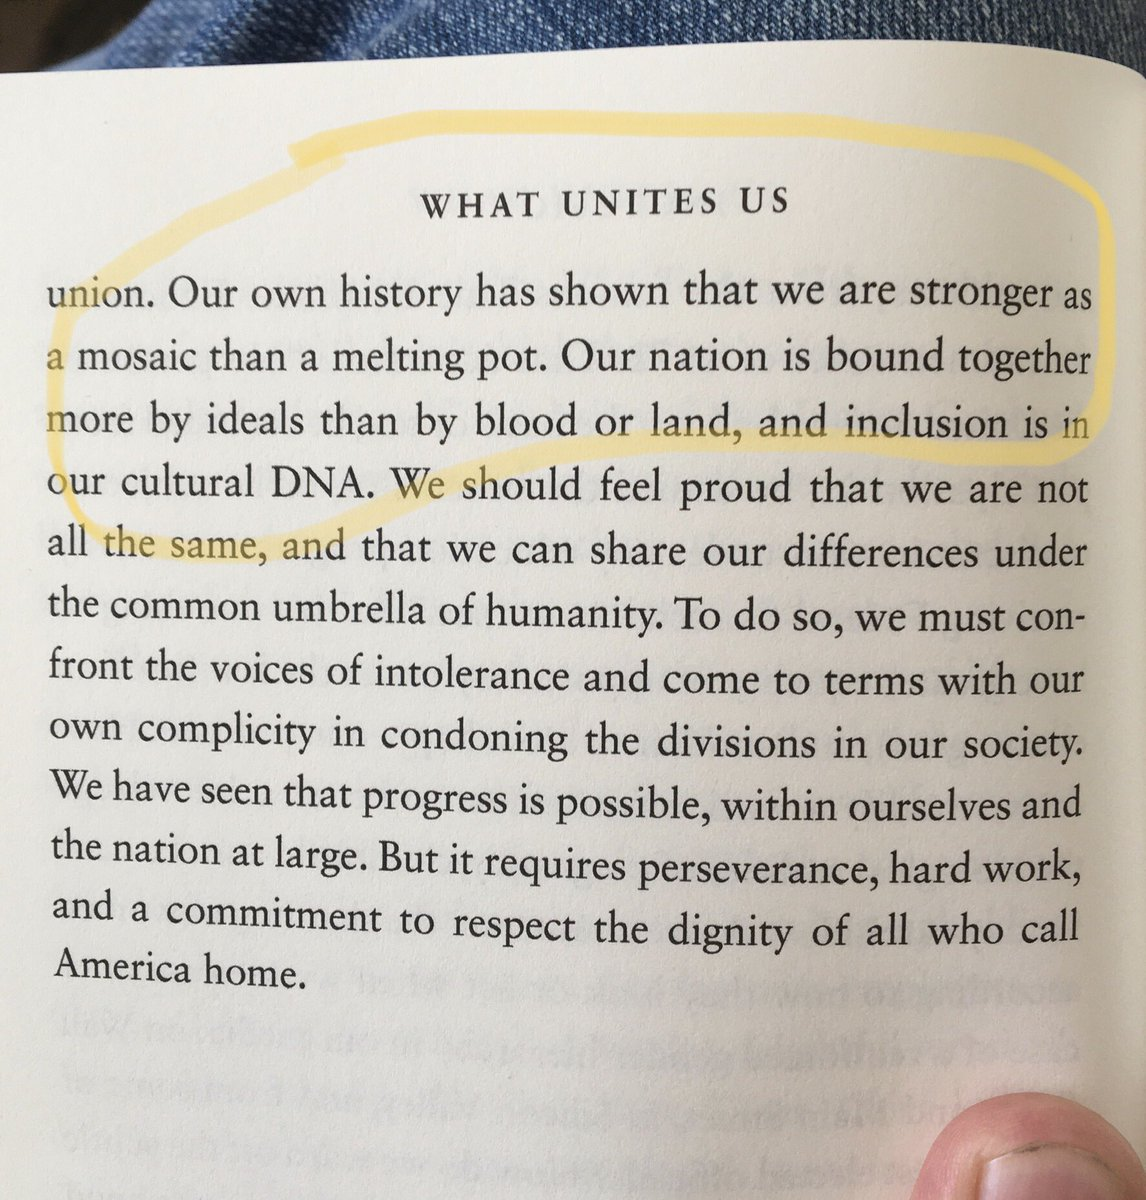 I found these words from @DanRather & Elliot Kirschner, from their book #WhatUnitesUs, particularly pointent this morning: